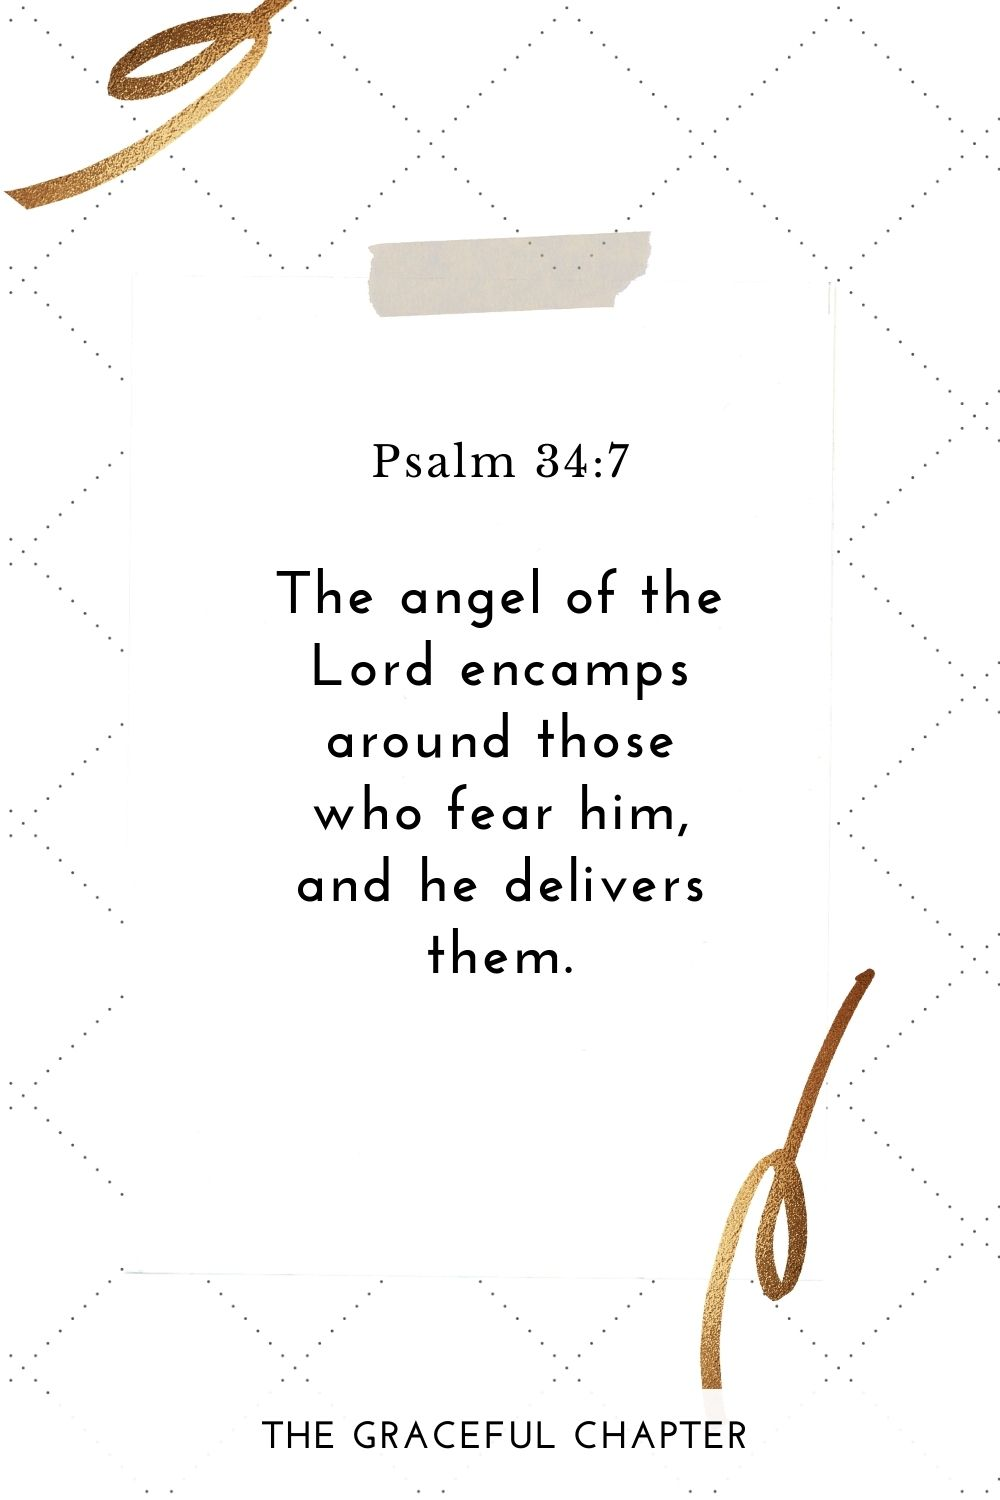 The angel of the Lord encamps around those who fear him, and he delivers them. Psalm 34:7